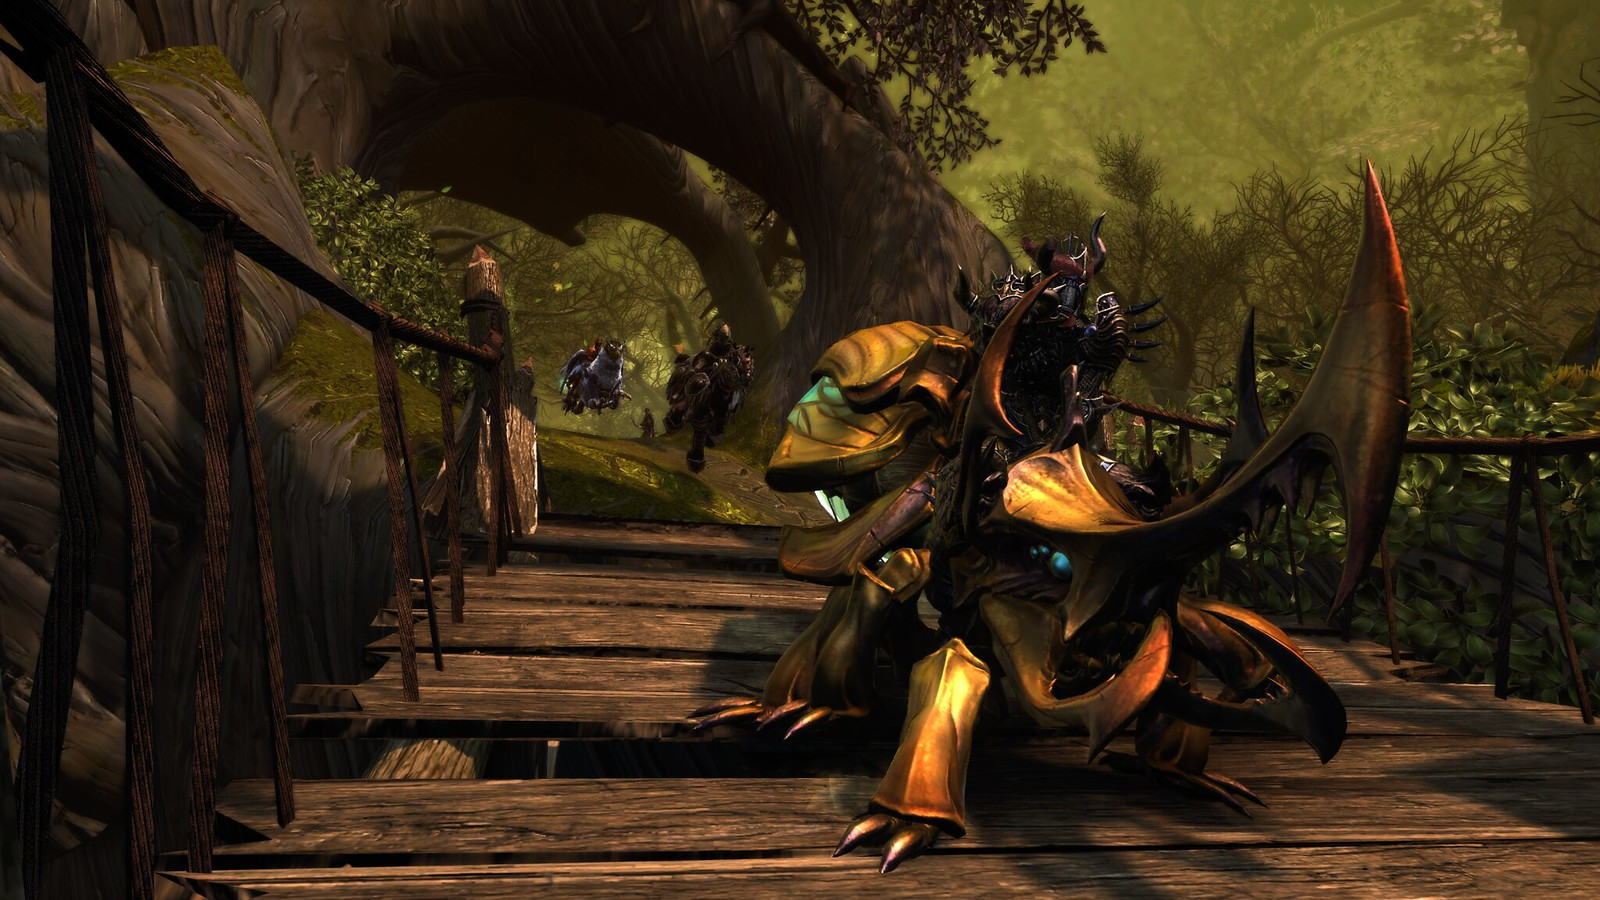 neverwinter para PS4 un free to play MMO